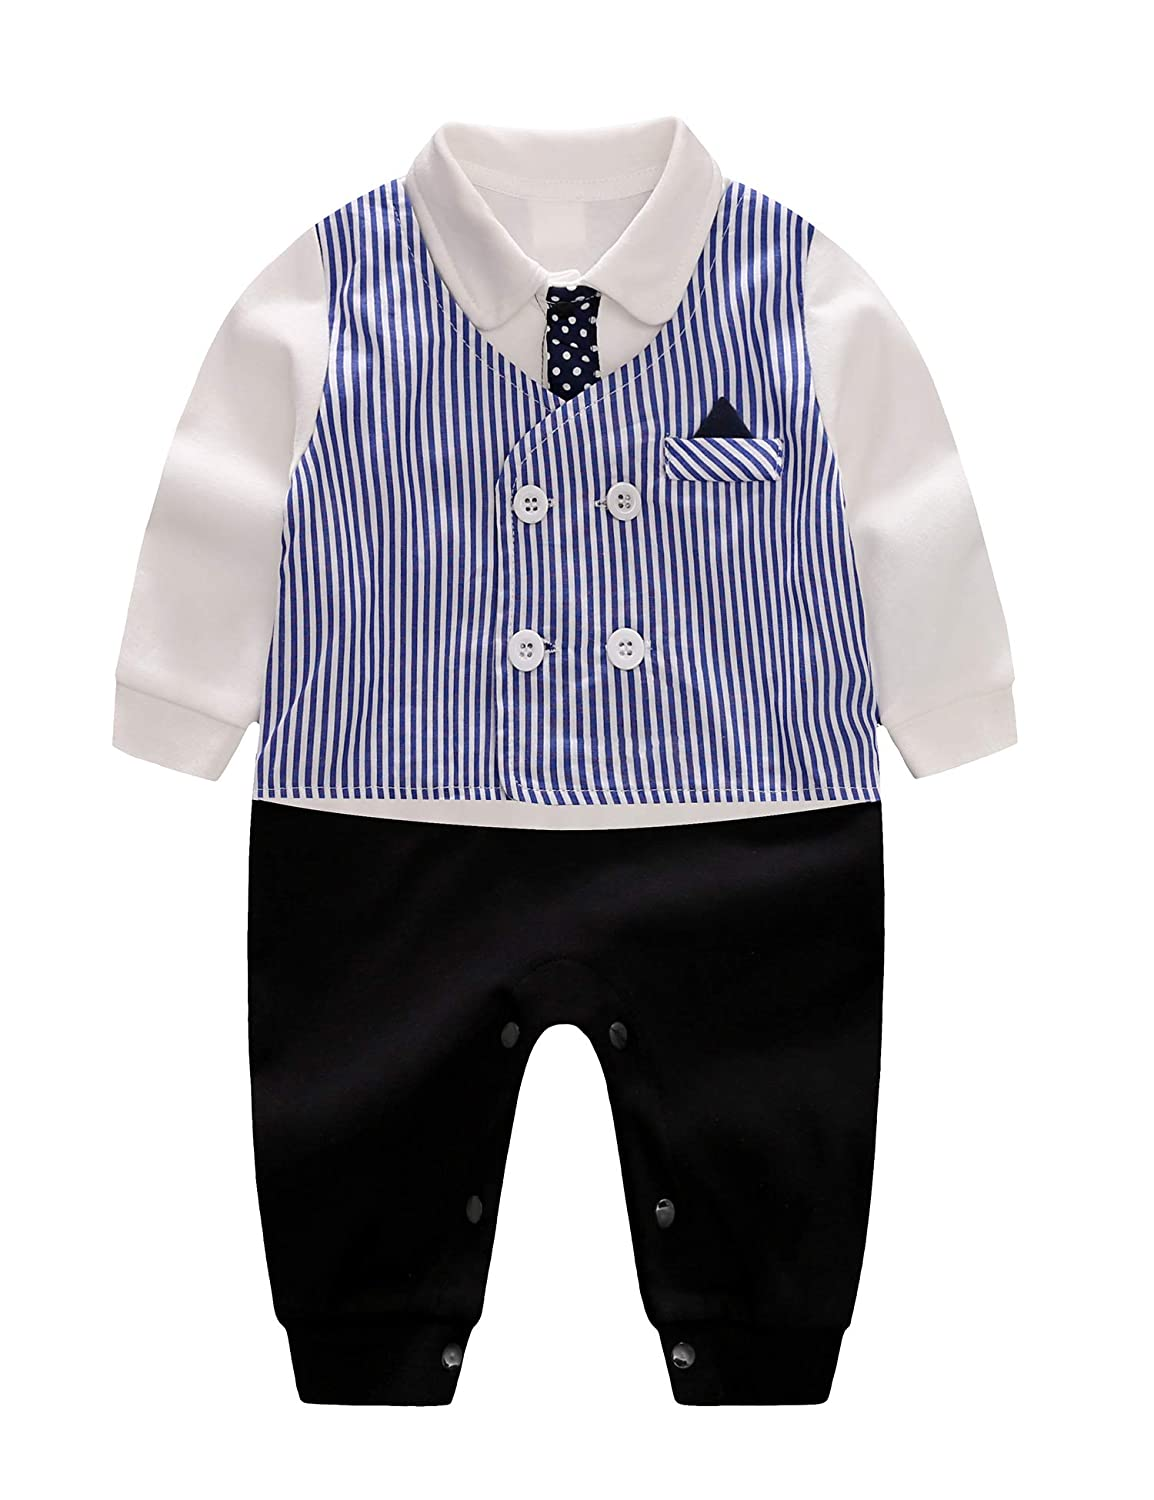 D.B.PRINCE Baby Boys Long Sleeves Gentleman Cotton Rompers Small Suit Bodysuit Outfit with Bow Tie